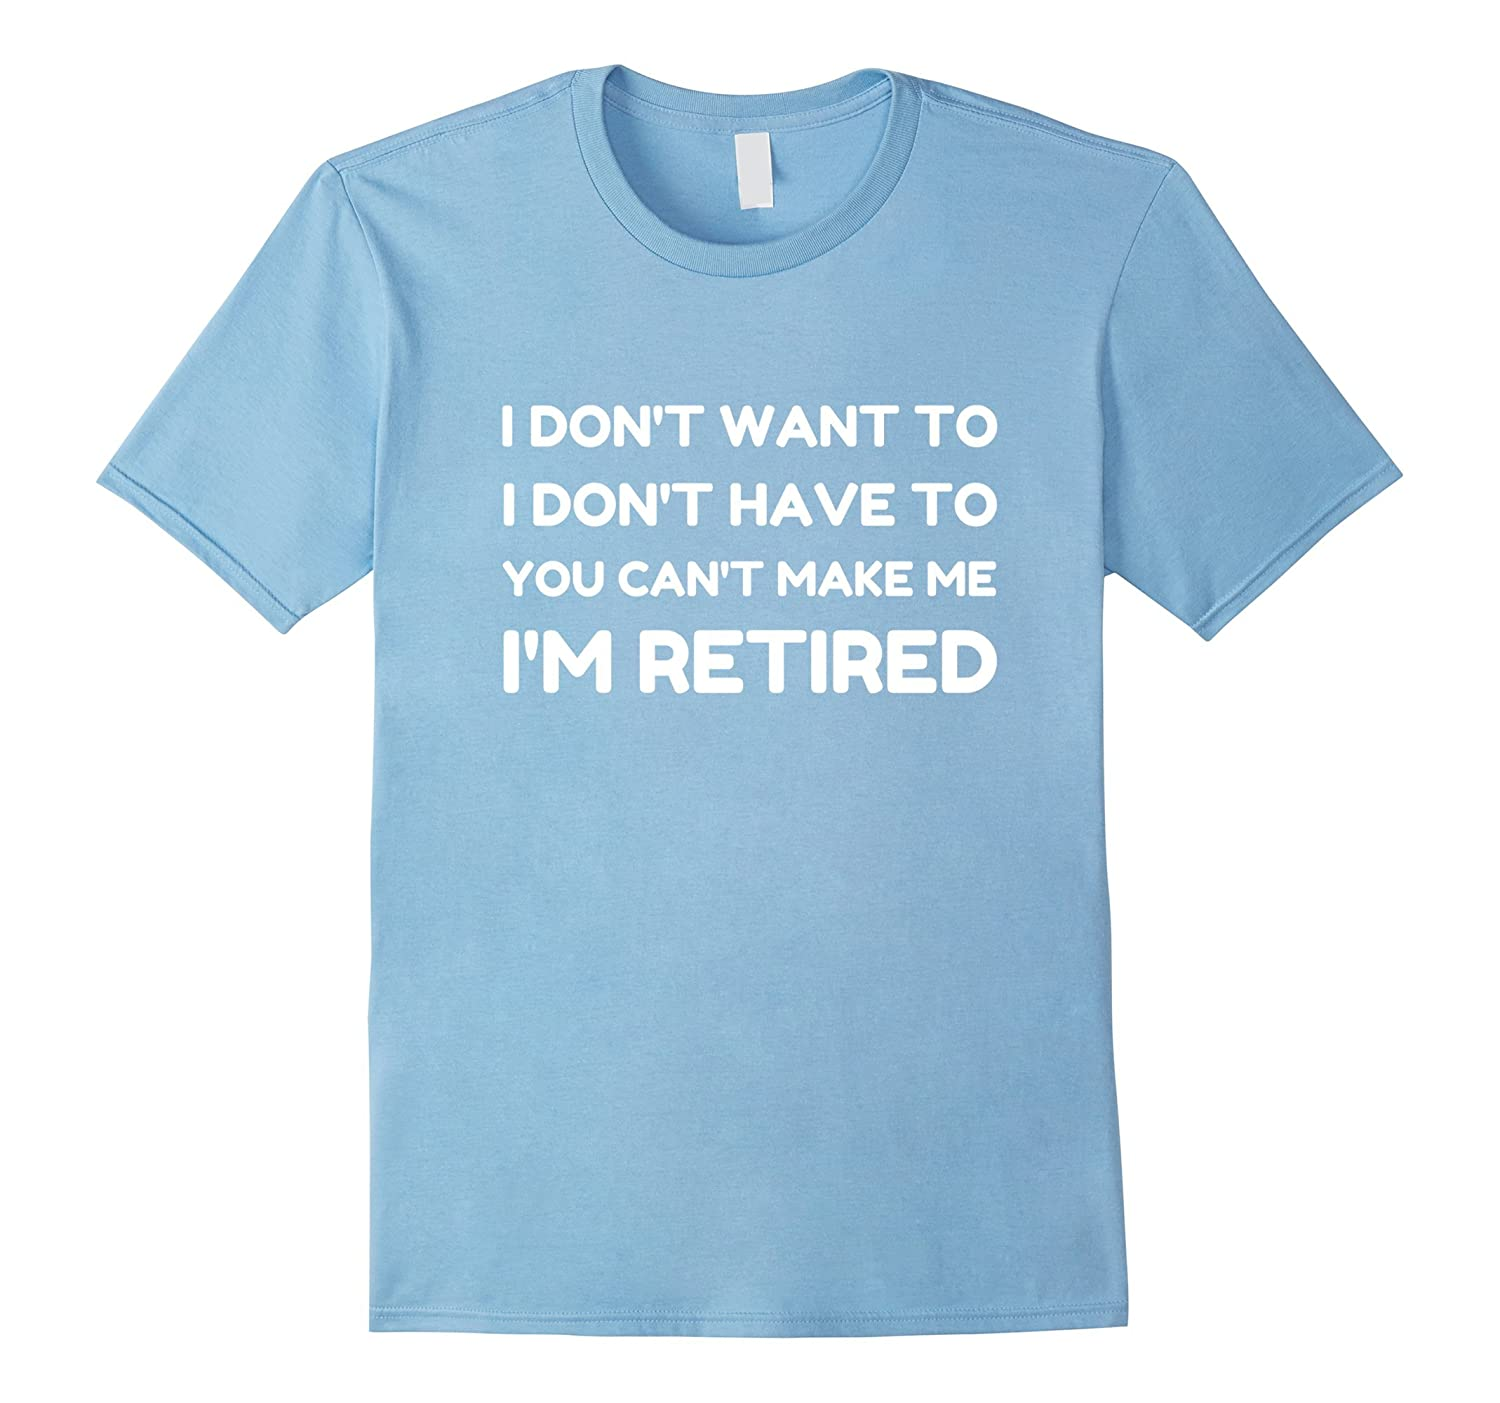 You Can't Make Me I'm Retired T-Shirt Funny Retirement Gift